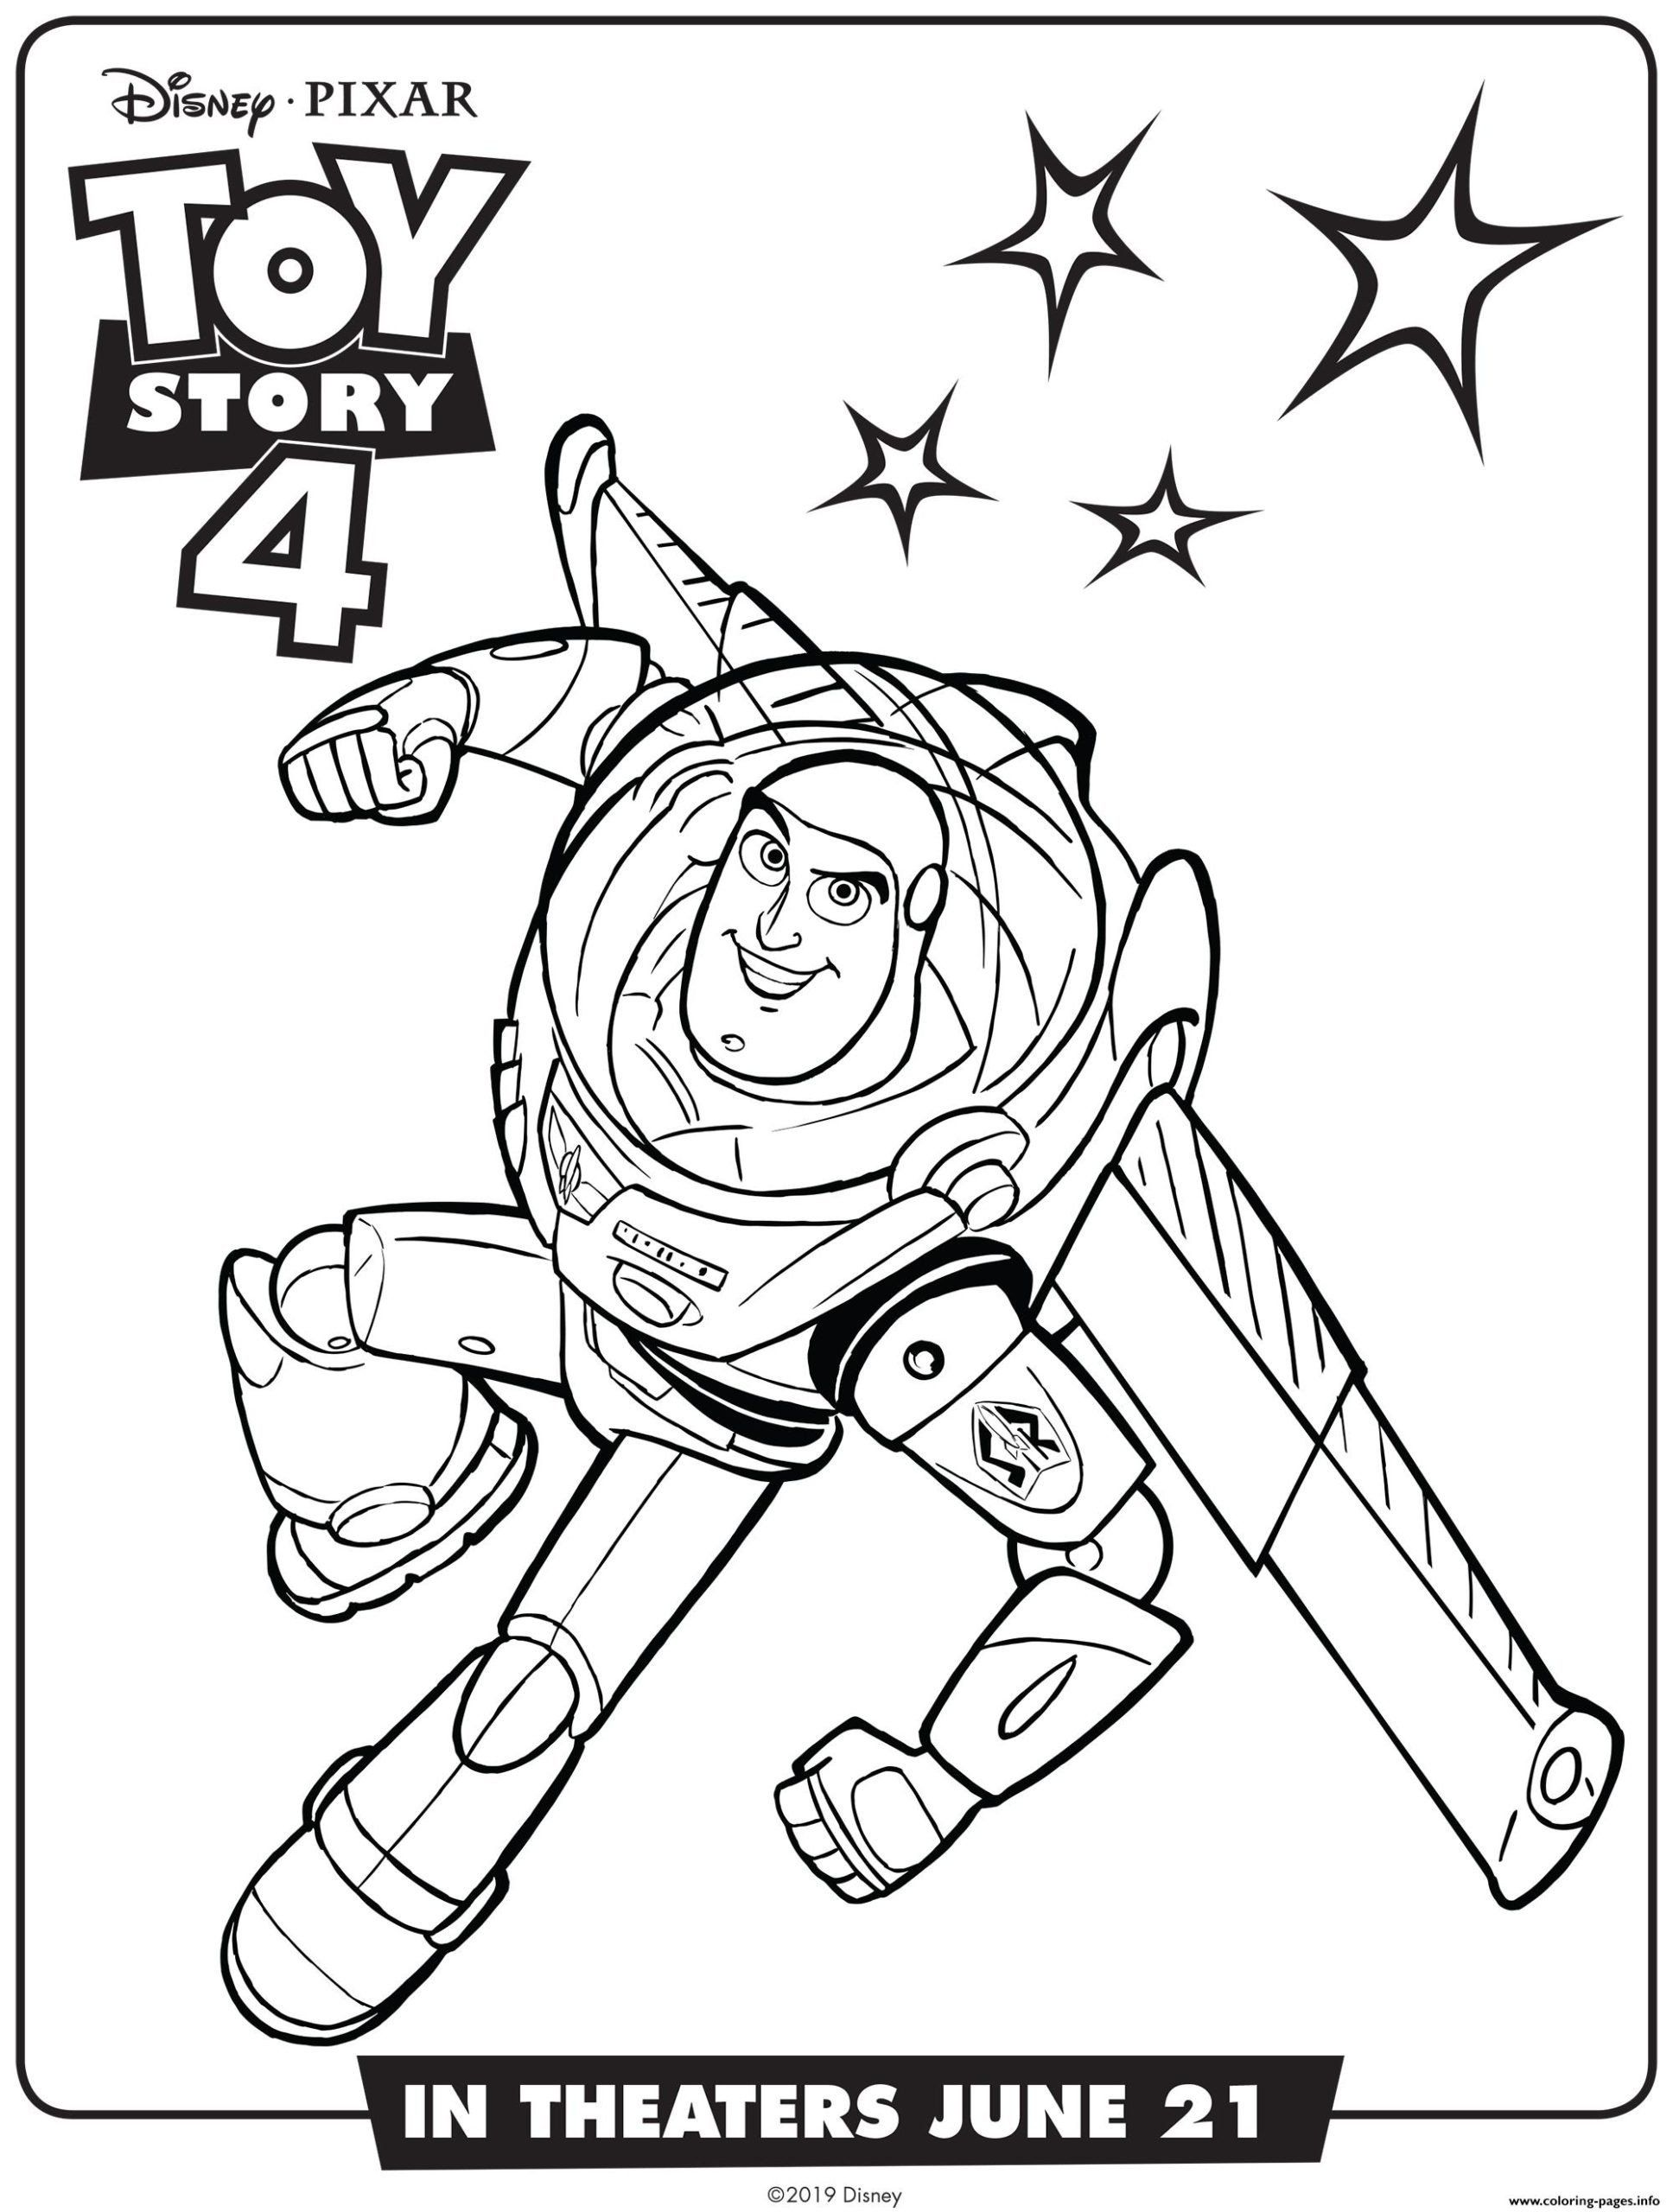 Coloring Pages For Kids Online Coloring Book Toy Story Coloring Book Pages For Kids In 2020 Toy Story Coloring Pages Disney Coloring Pages Coloring Books